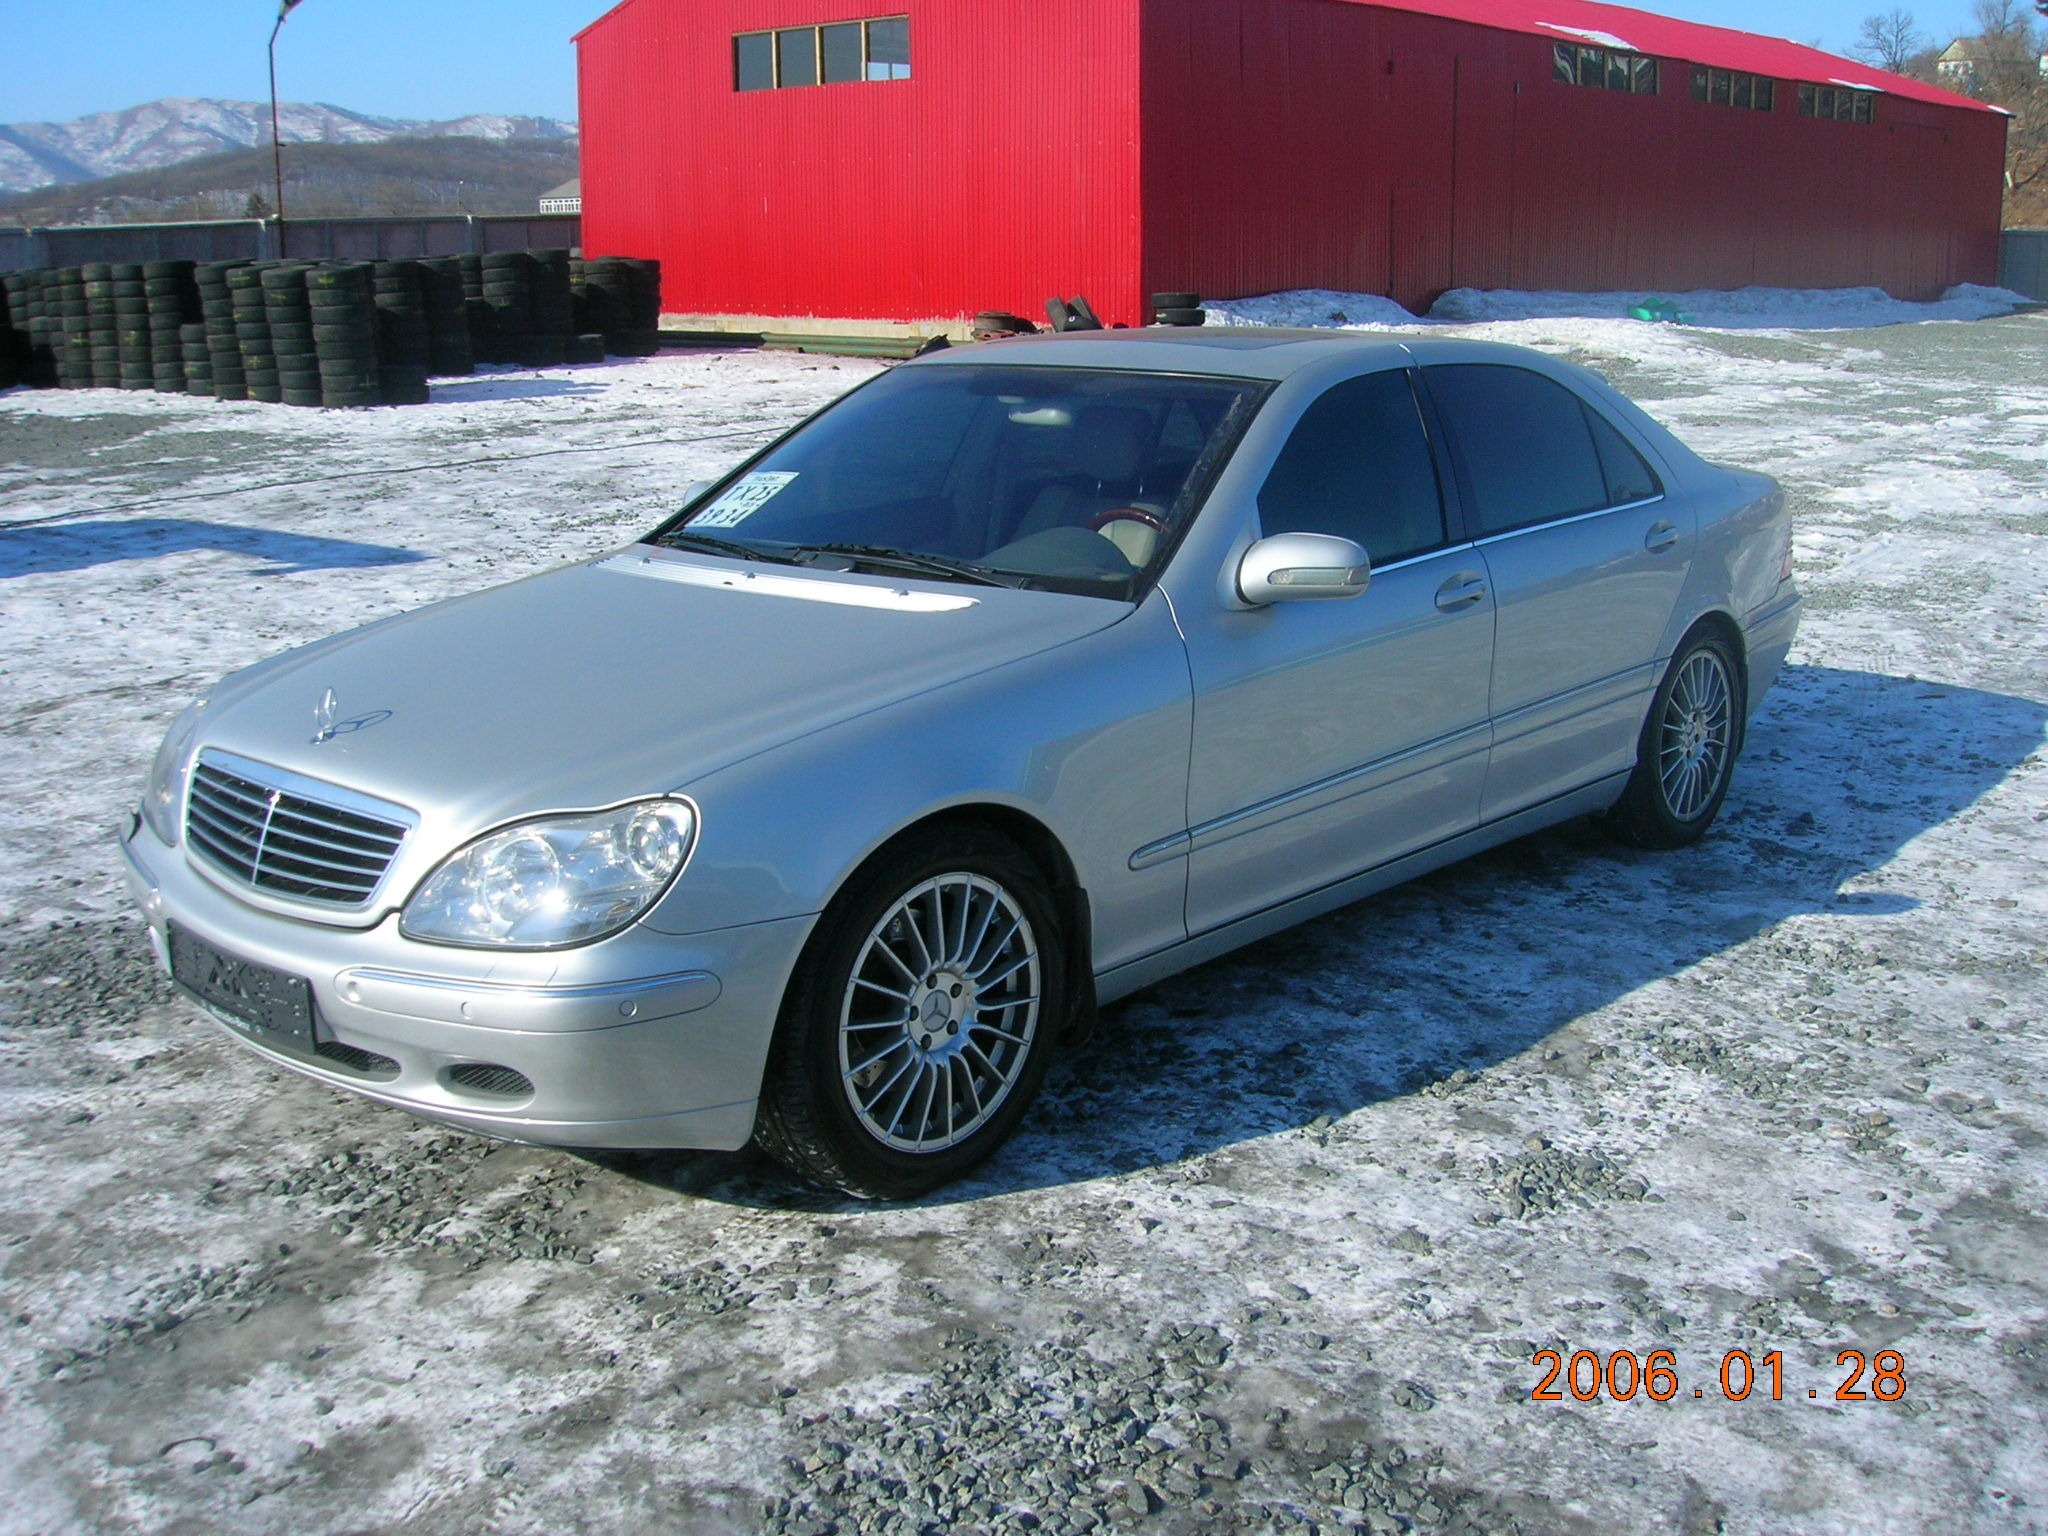 1999 mercedes benz s500 pictures for sale for 1999 mercedes benz s500 for sale